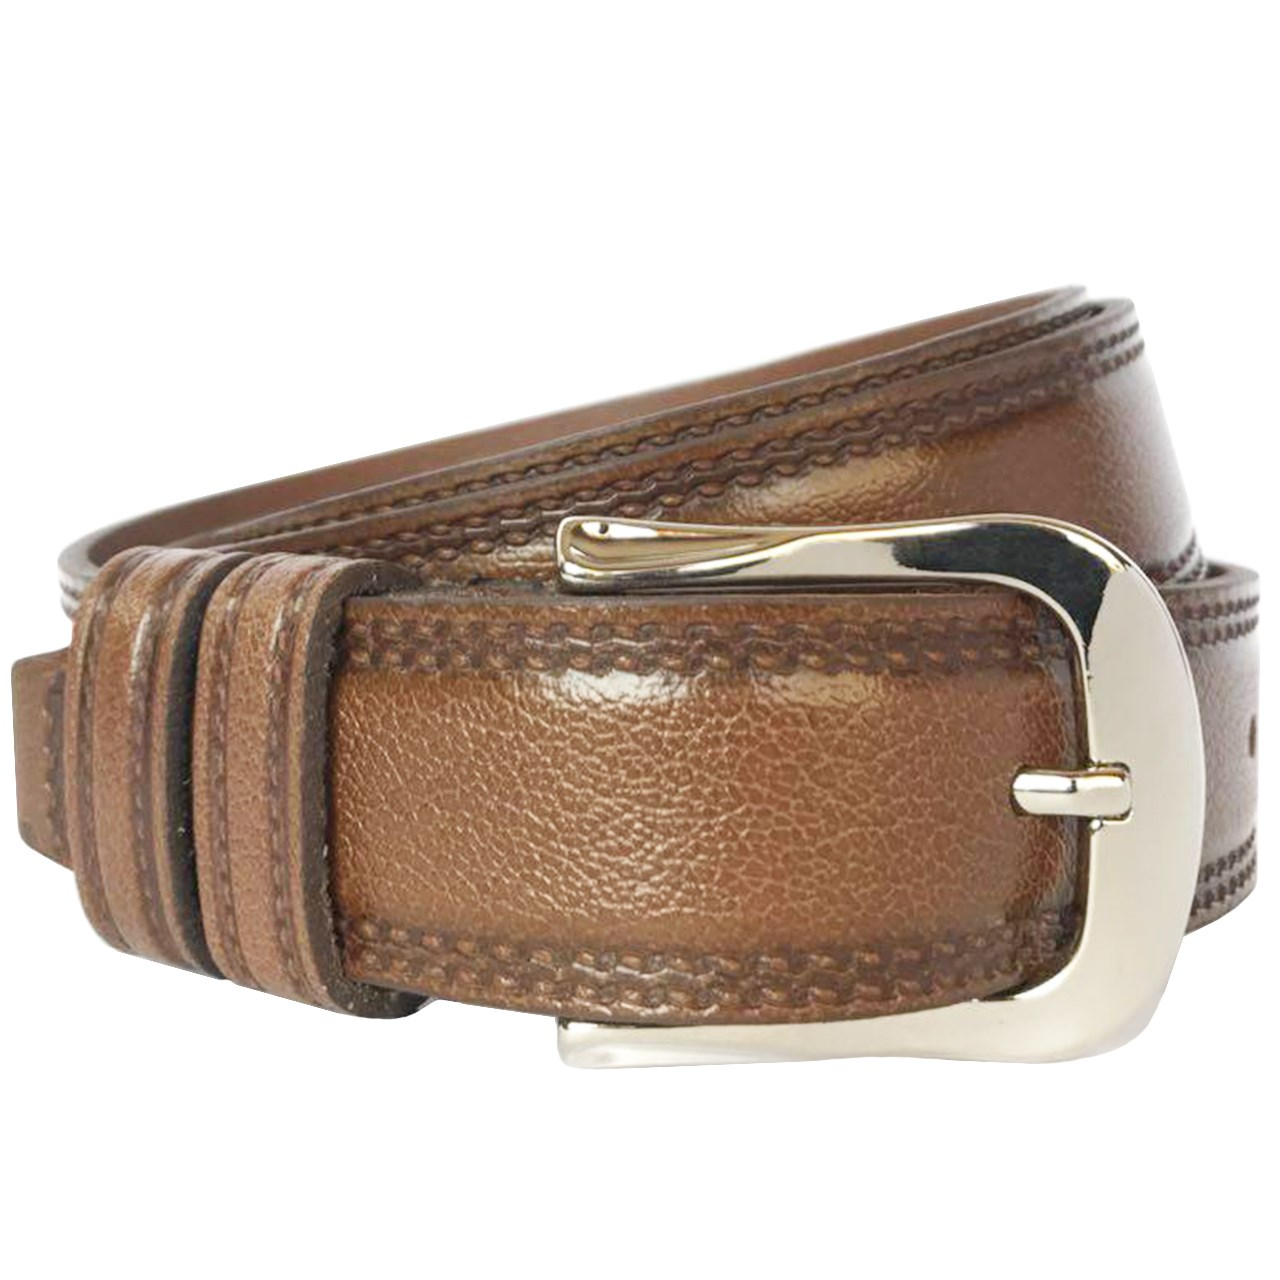 RAYA NATURAL LEATHER MEN'S BELT, MODEL PATTERNED